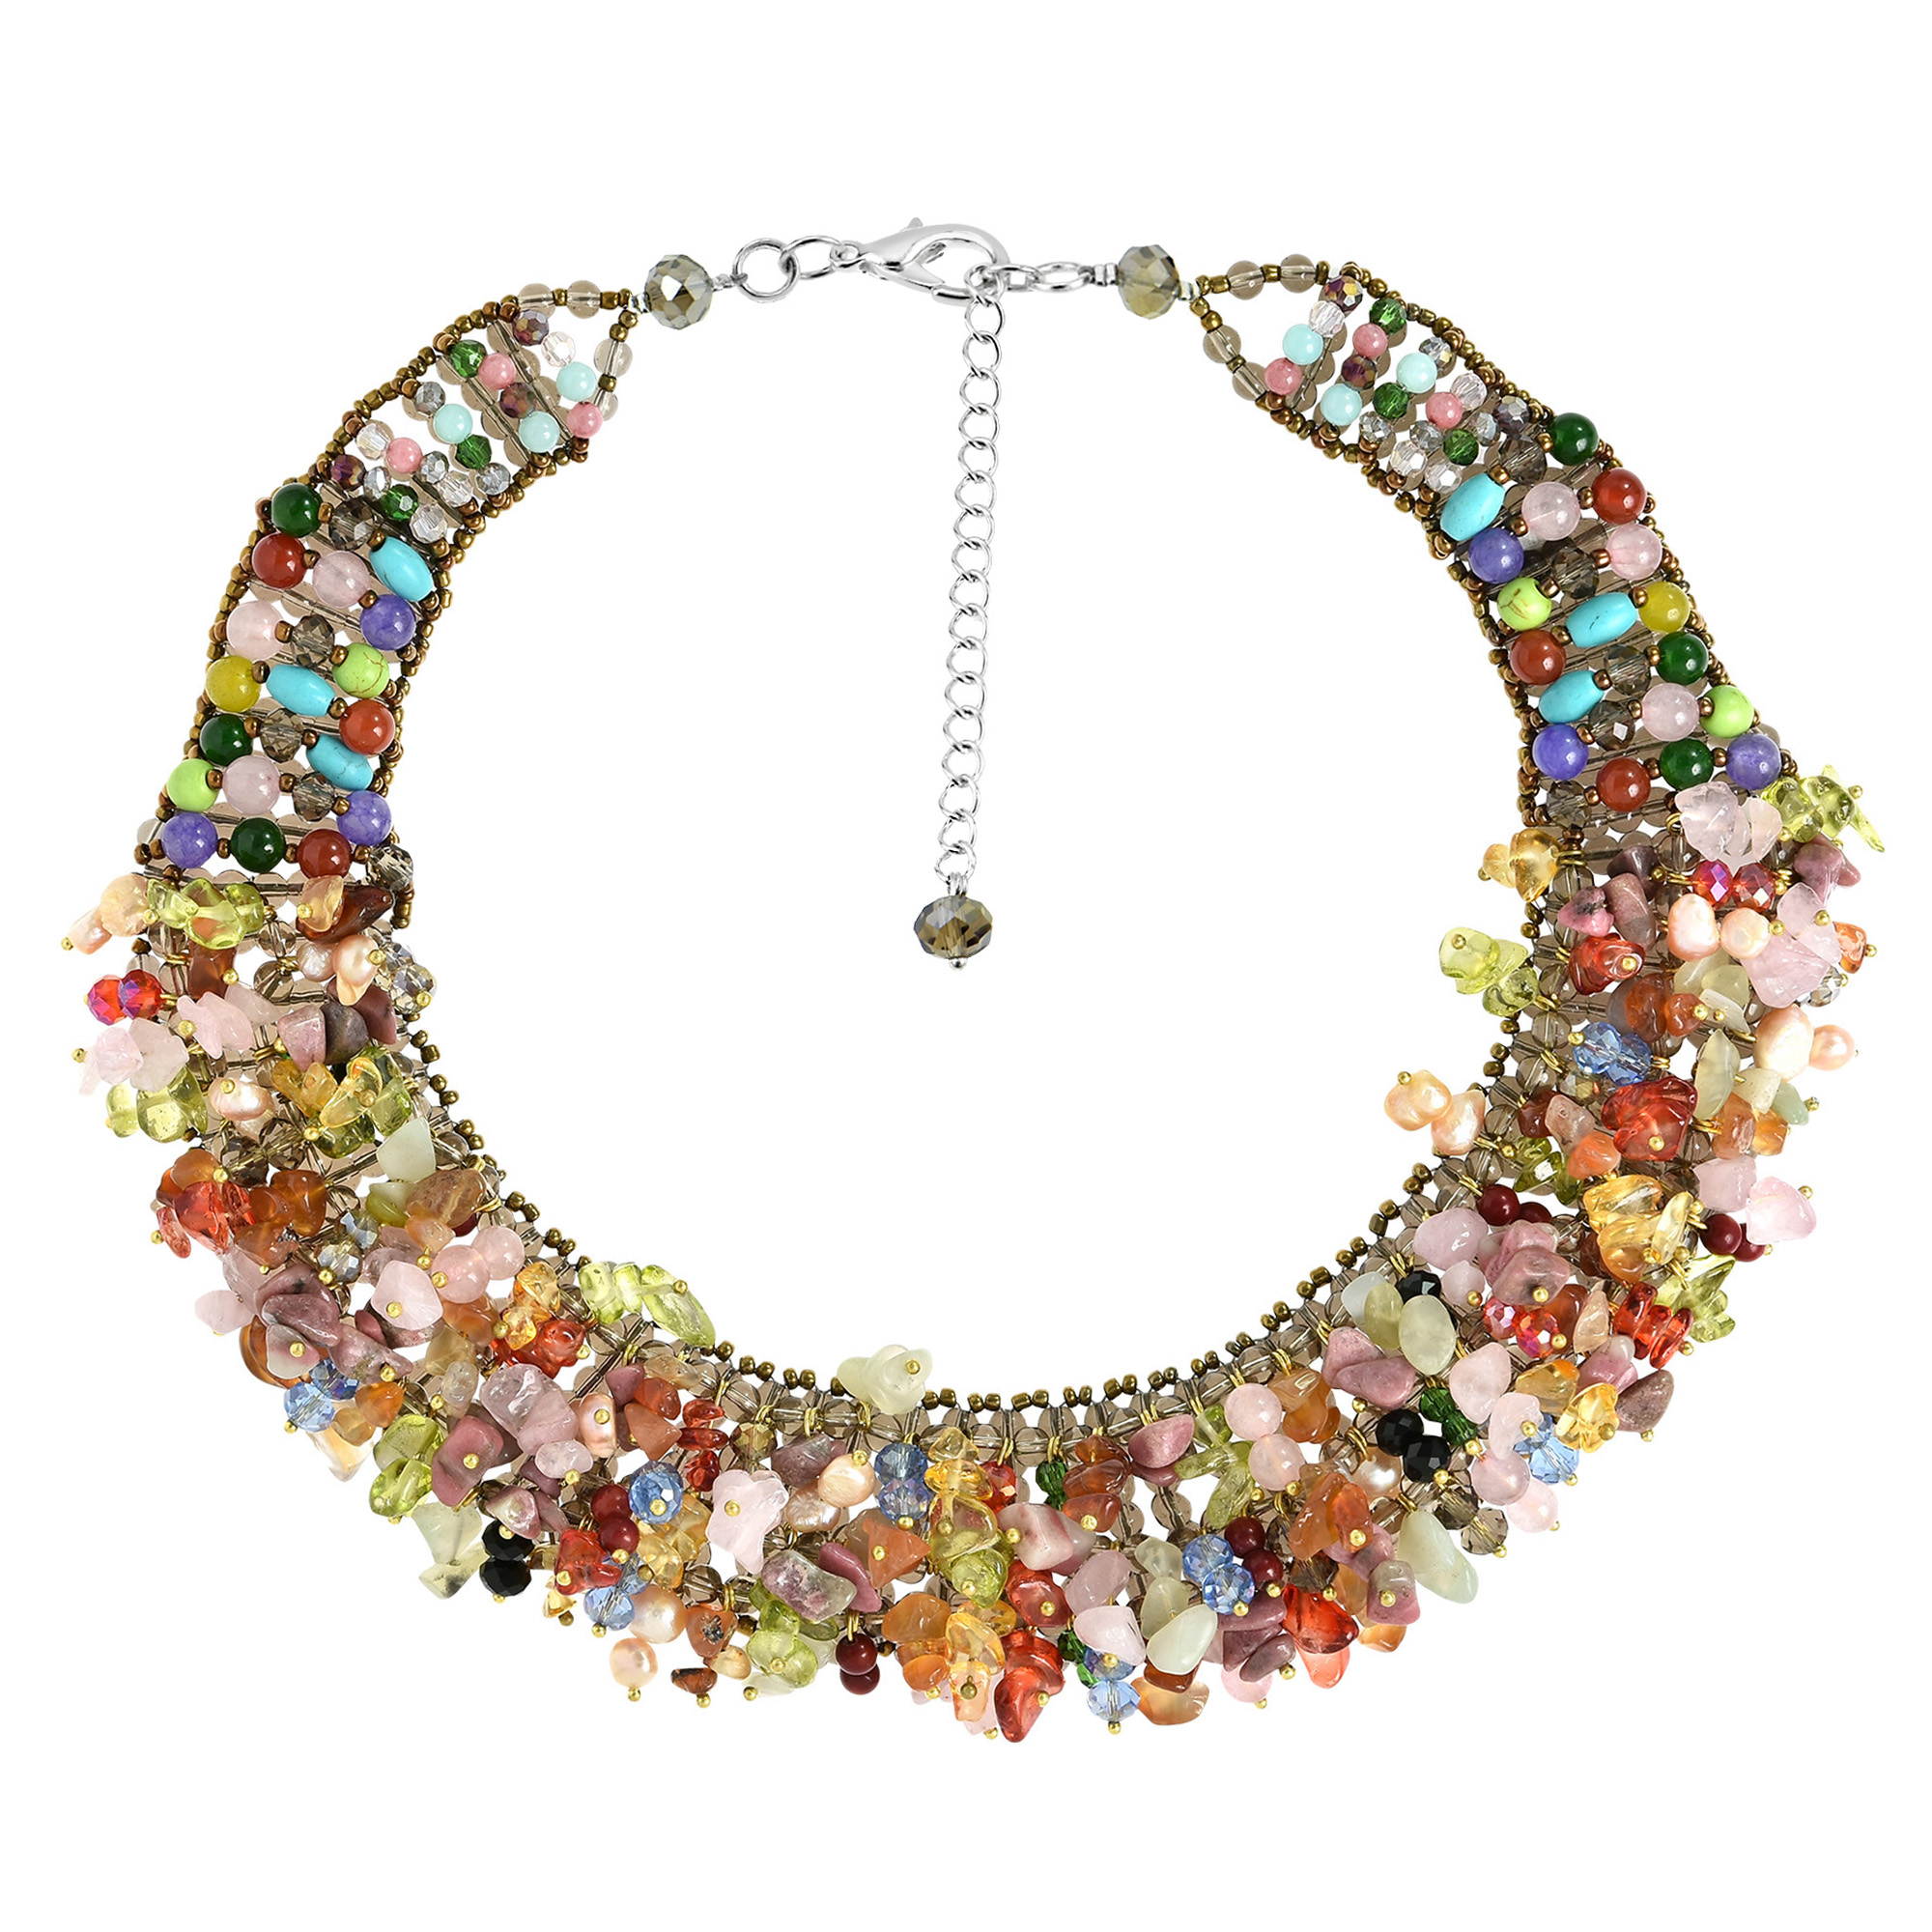 Rainbow Baby Chunky Necklace Baby Multi-Color Necklace Chunky Necklace Toddler Rainbow Chunky Necklace Rainbow Chunky Necklace